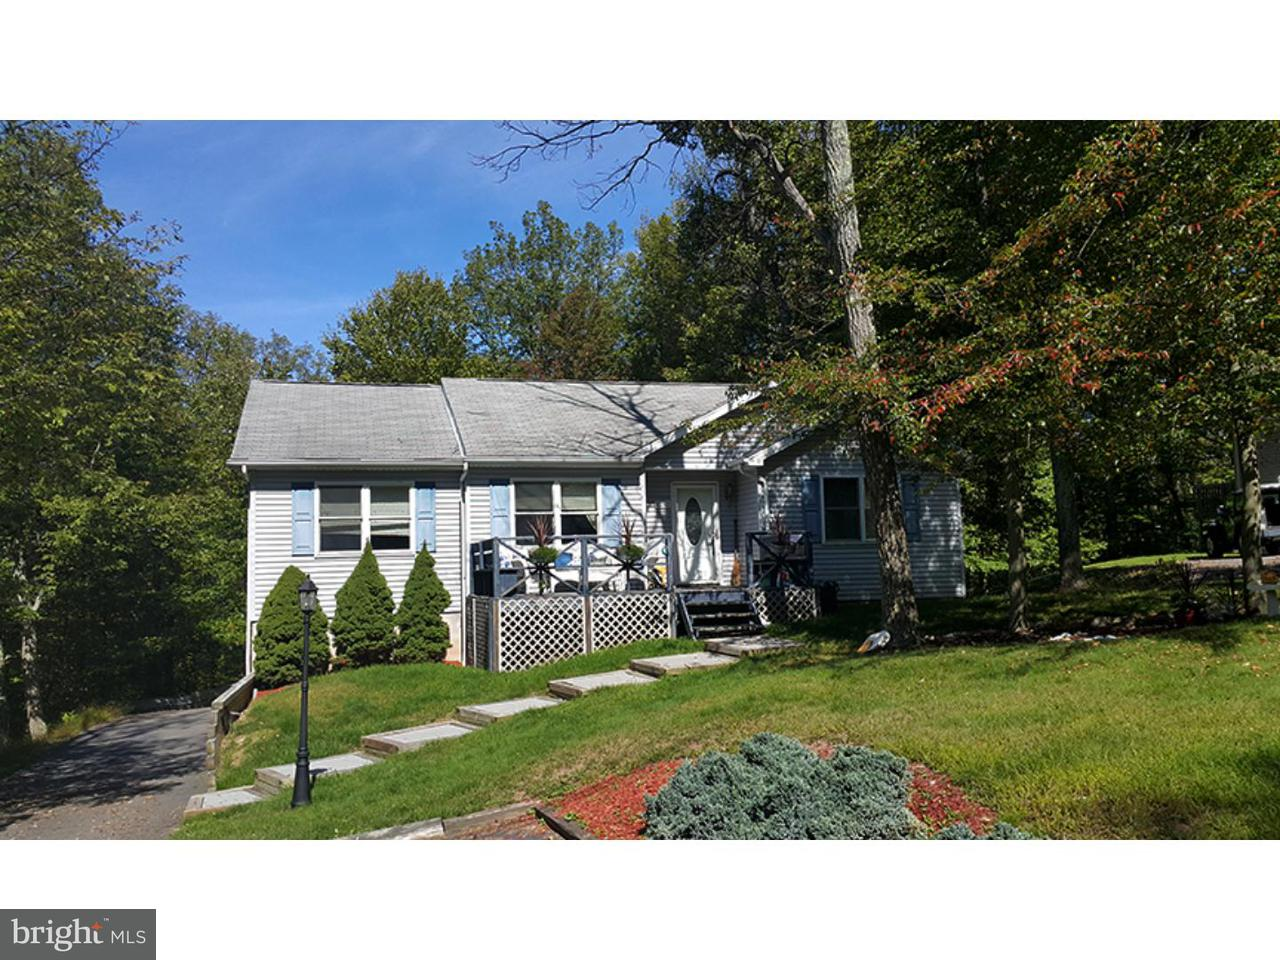 Single Family Home for Sale at 294 SNOW VALLEY Circle Drums, Pennsylvania 18222 United States